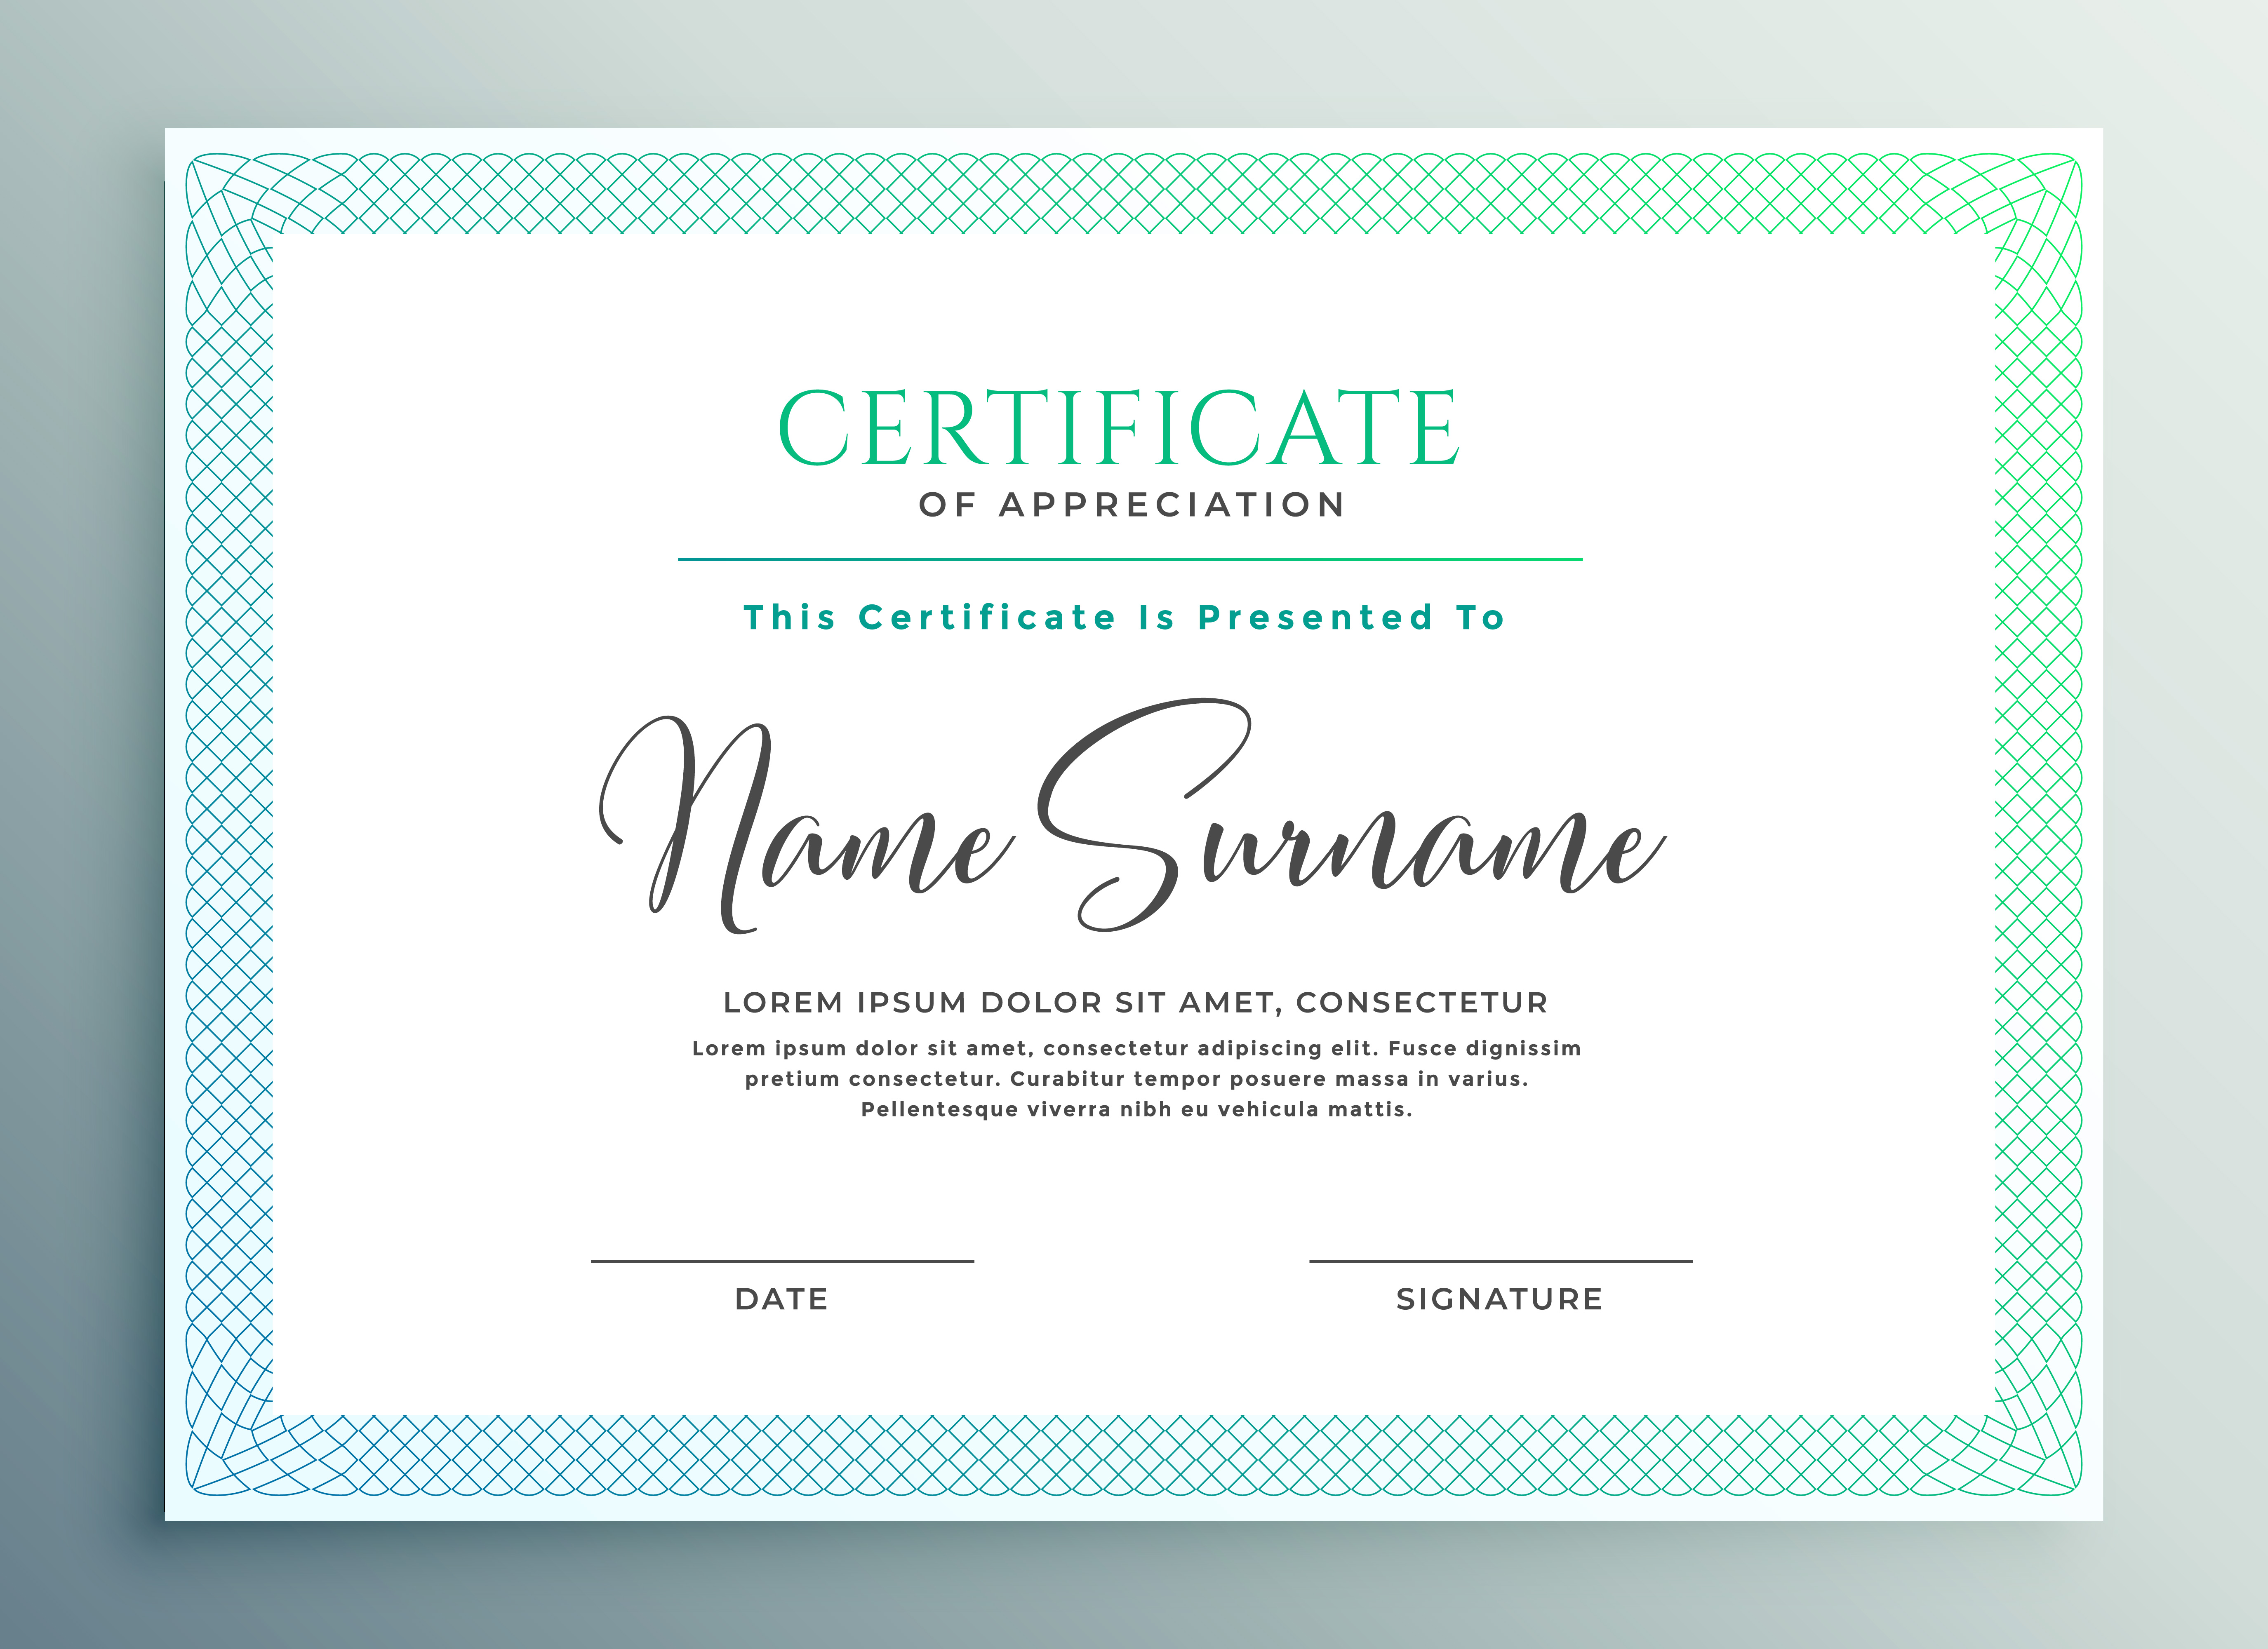 Certificate Of Appreciation Template Design Download Free Vector